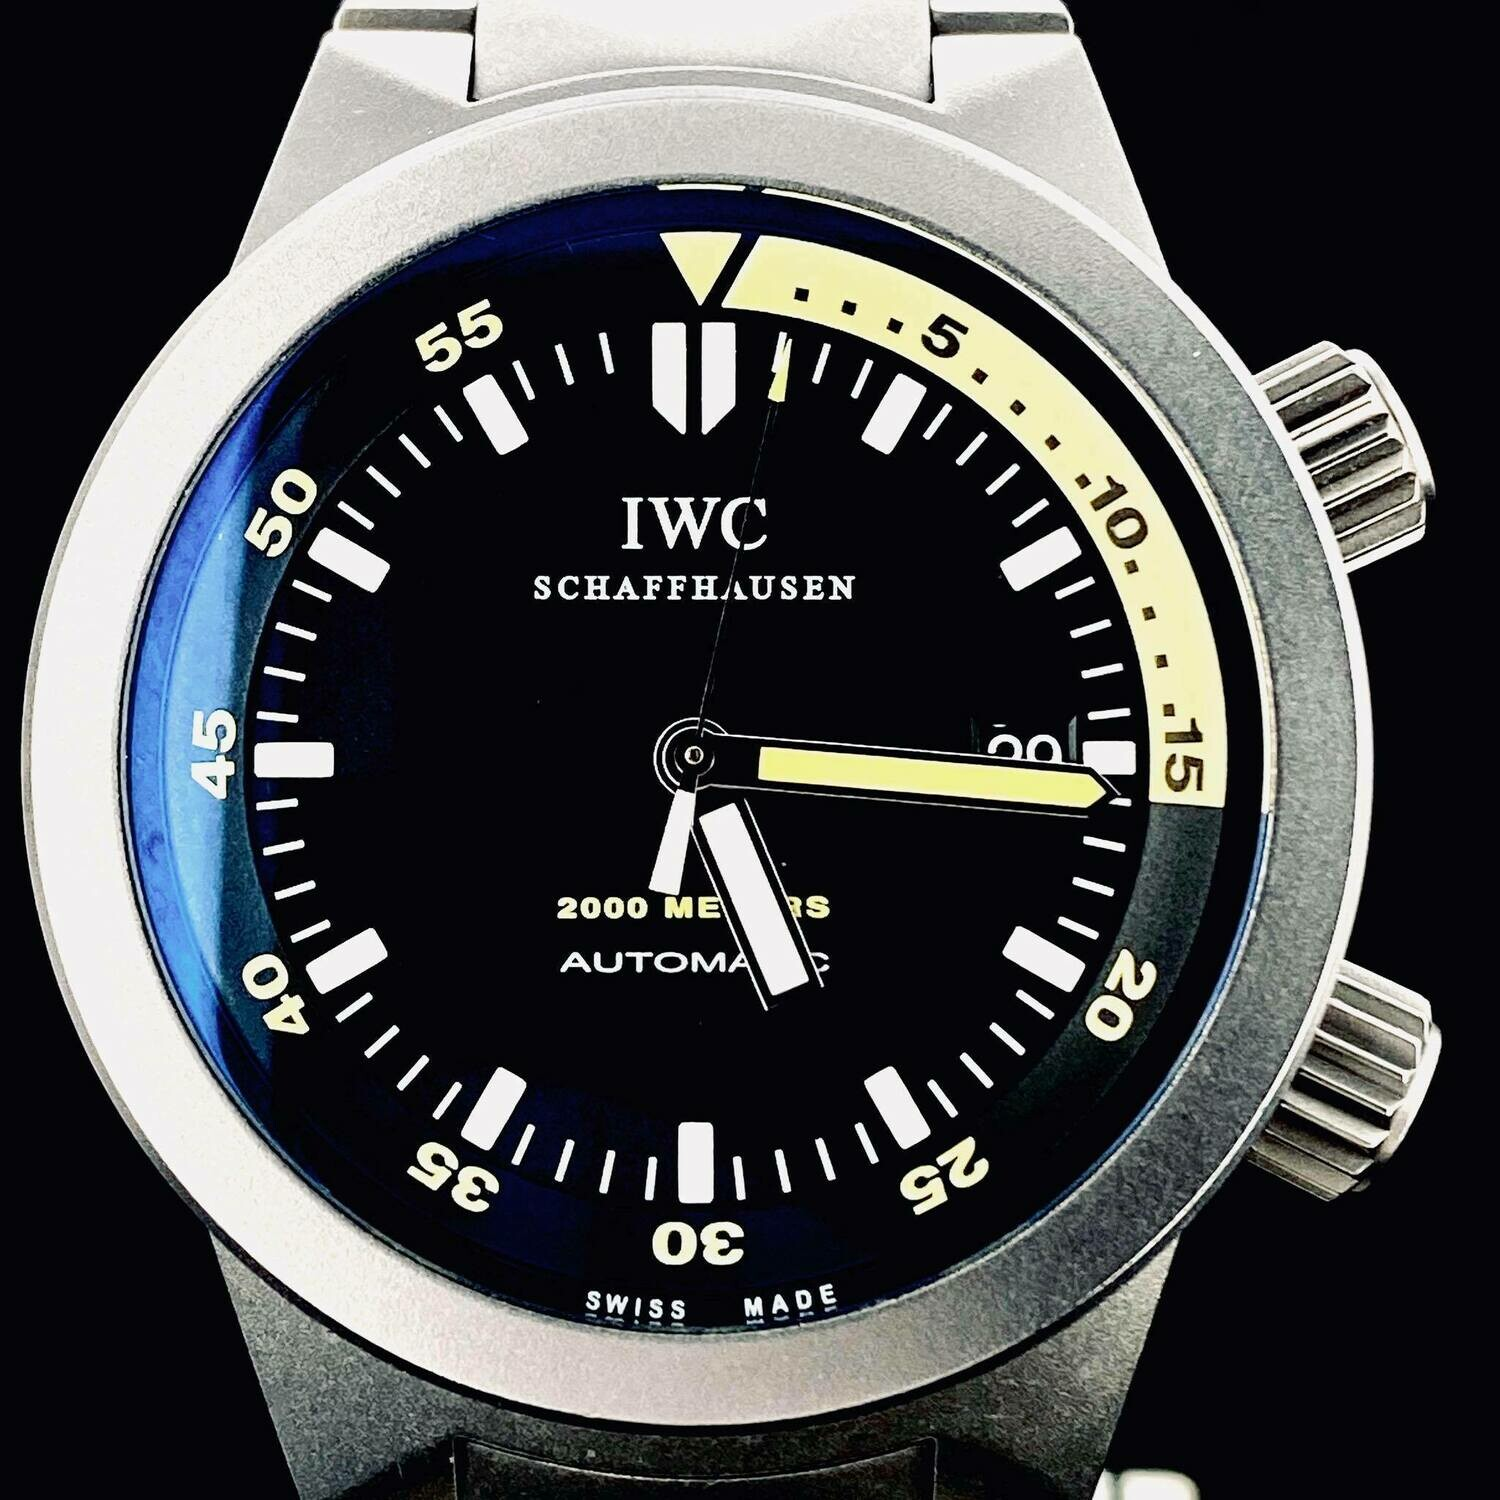 IWC Aquatimer 2000 Meters Diving Full Titanium Watch 42MM Automatic Fullset B&P2011